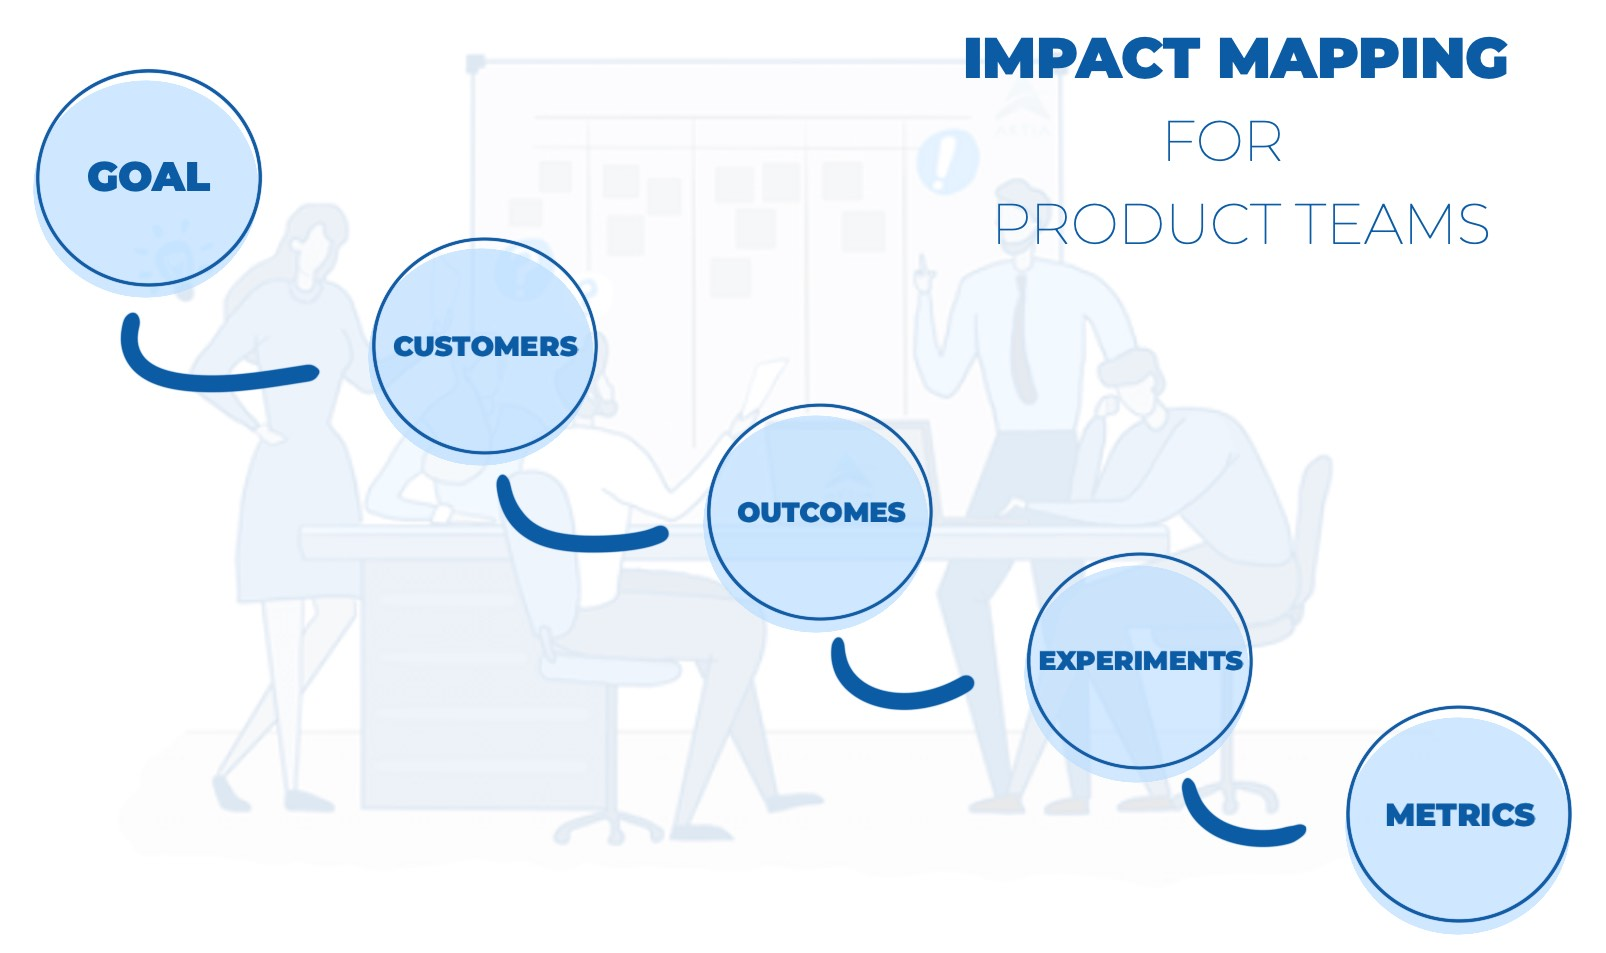 Impact Mapping for Product Teams